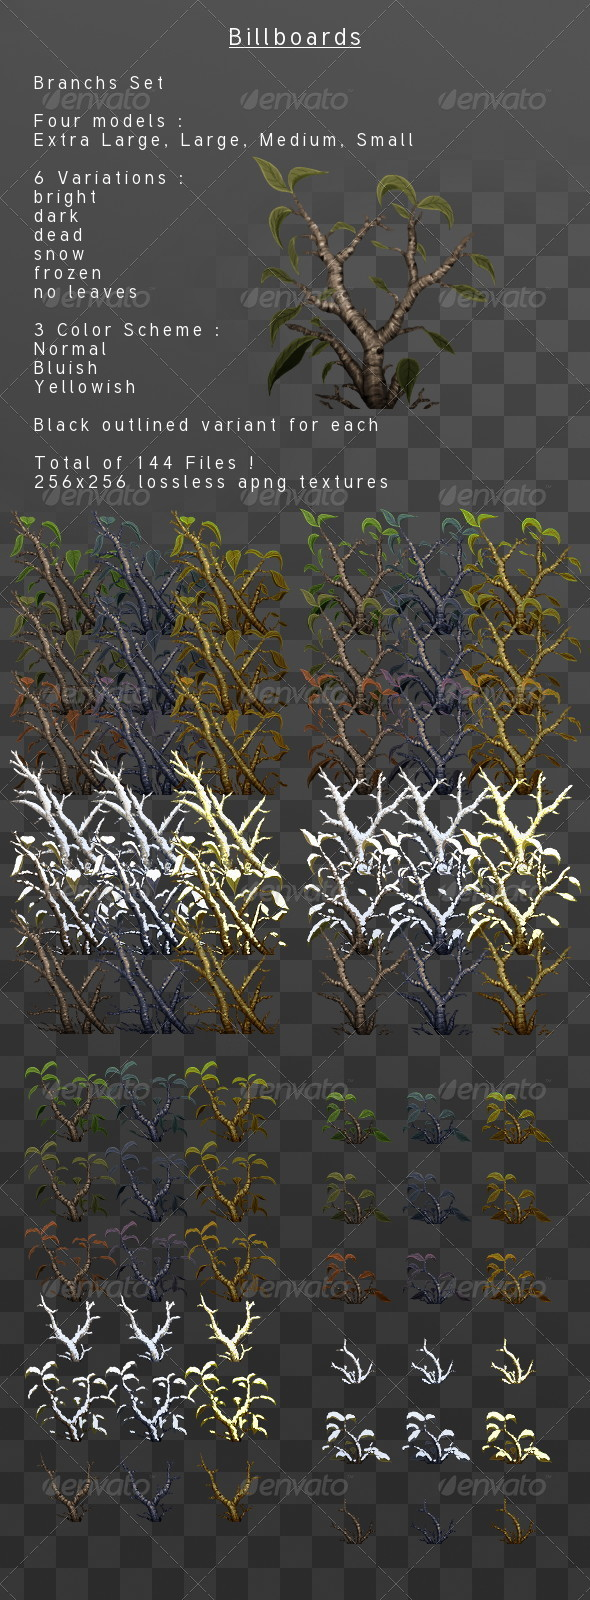 Branches & Leaves Billboard pack - 3DOcean Item for Sale